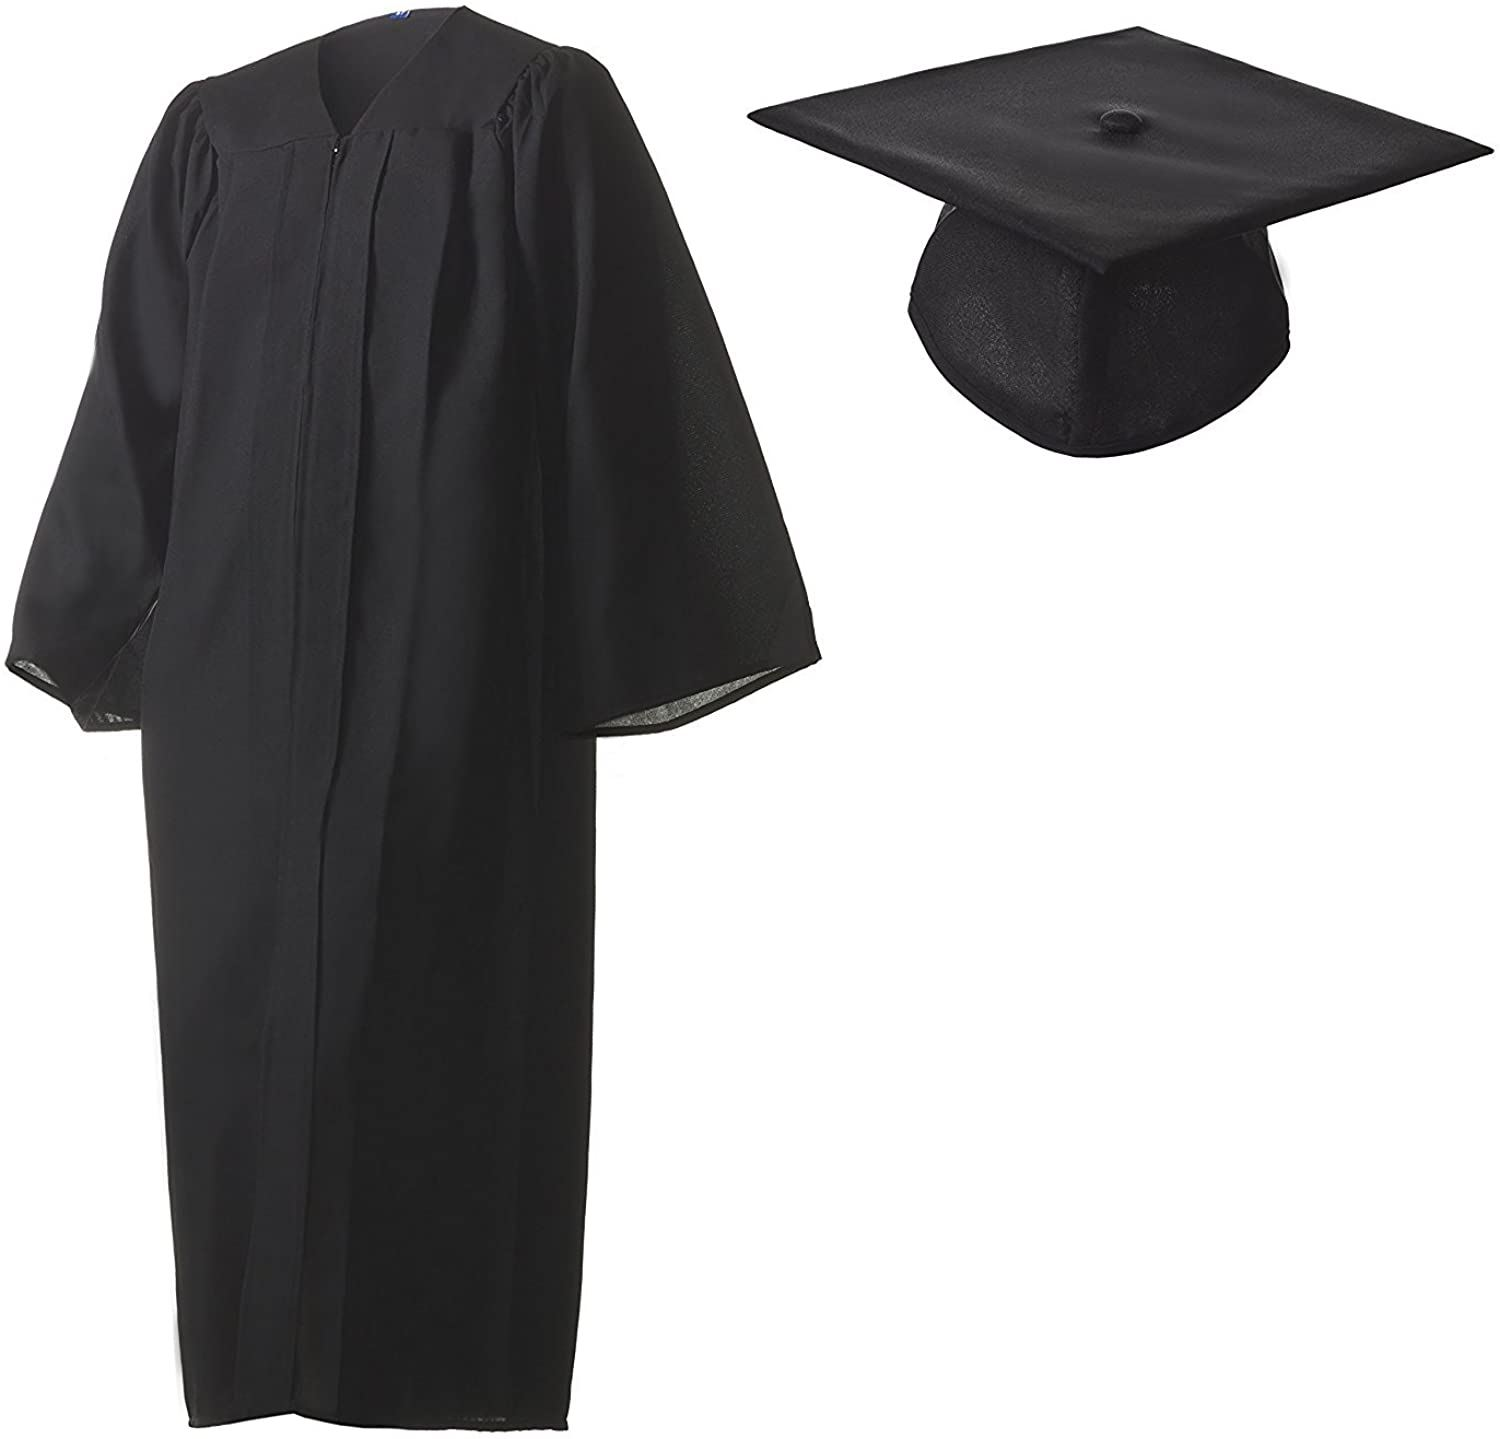 Senior Cap and Gown Ordering